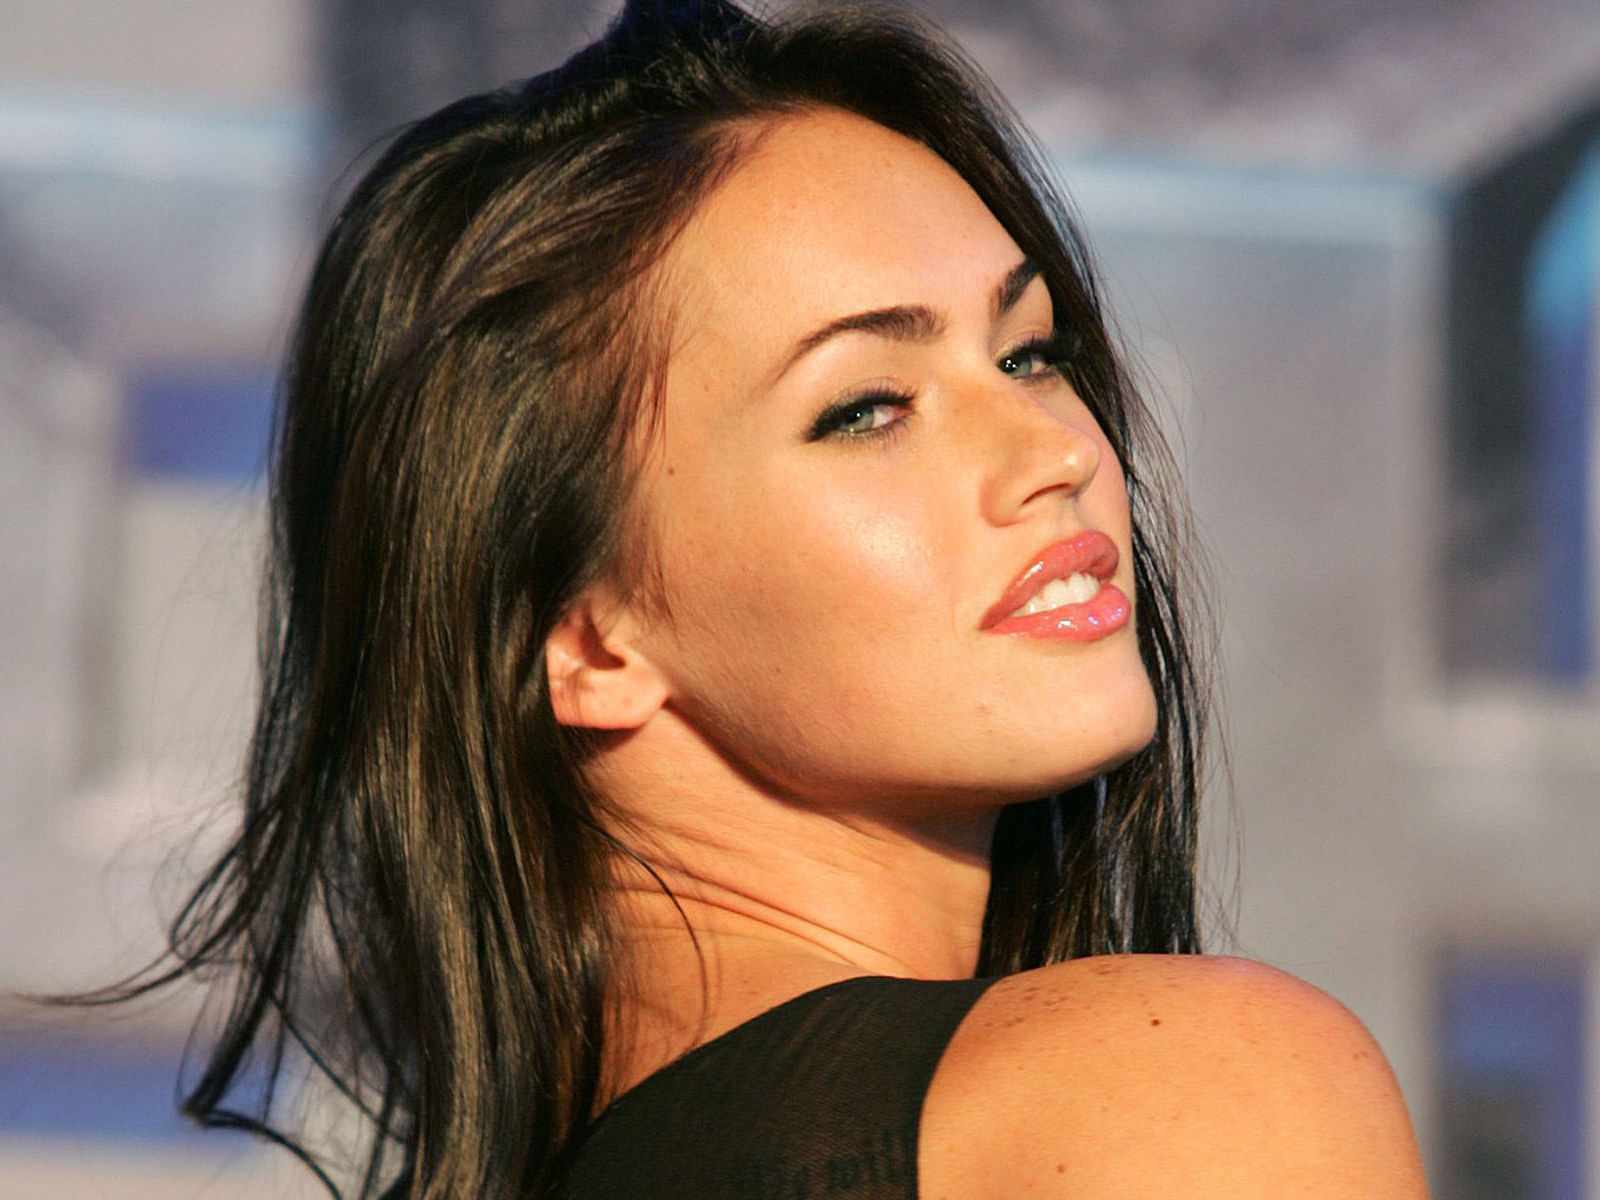 megan-fox-wallpaper-hd-megan-fox-to-make-transformers-5-comeback-jpeg-126121